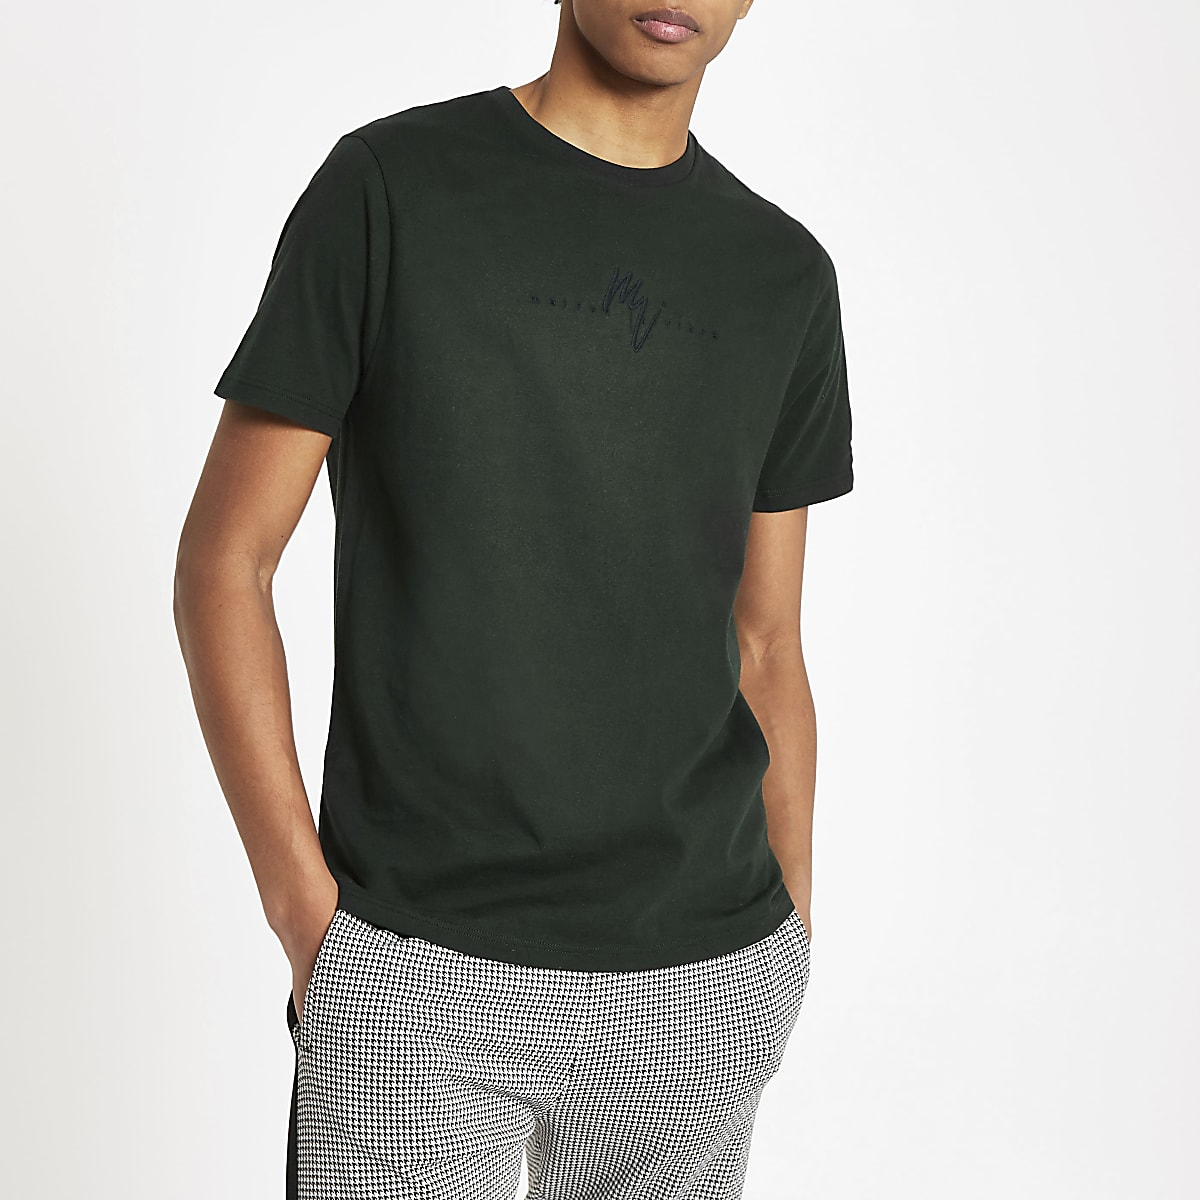 Green Maison Riviera slim fit T-shirt